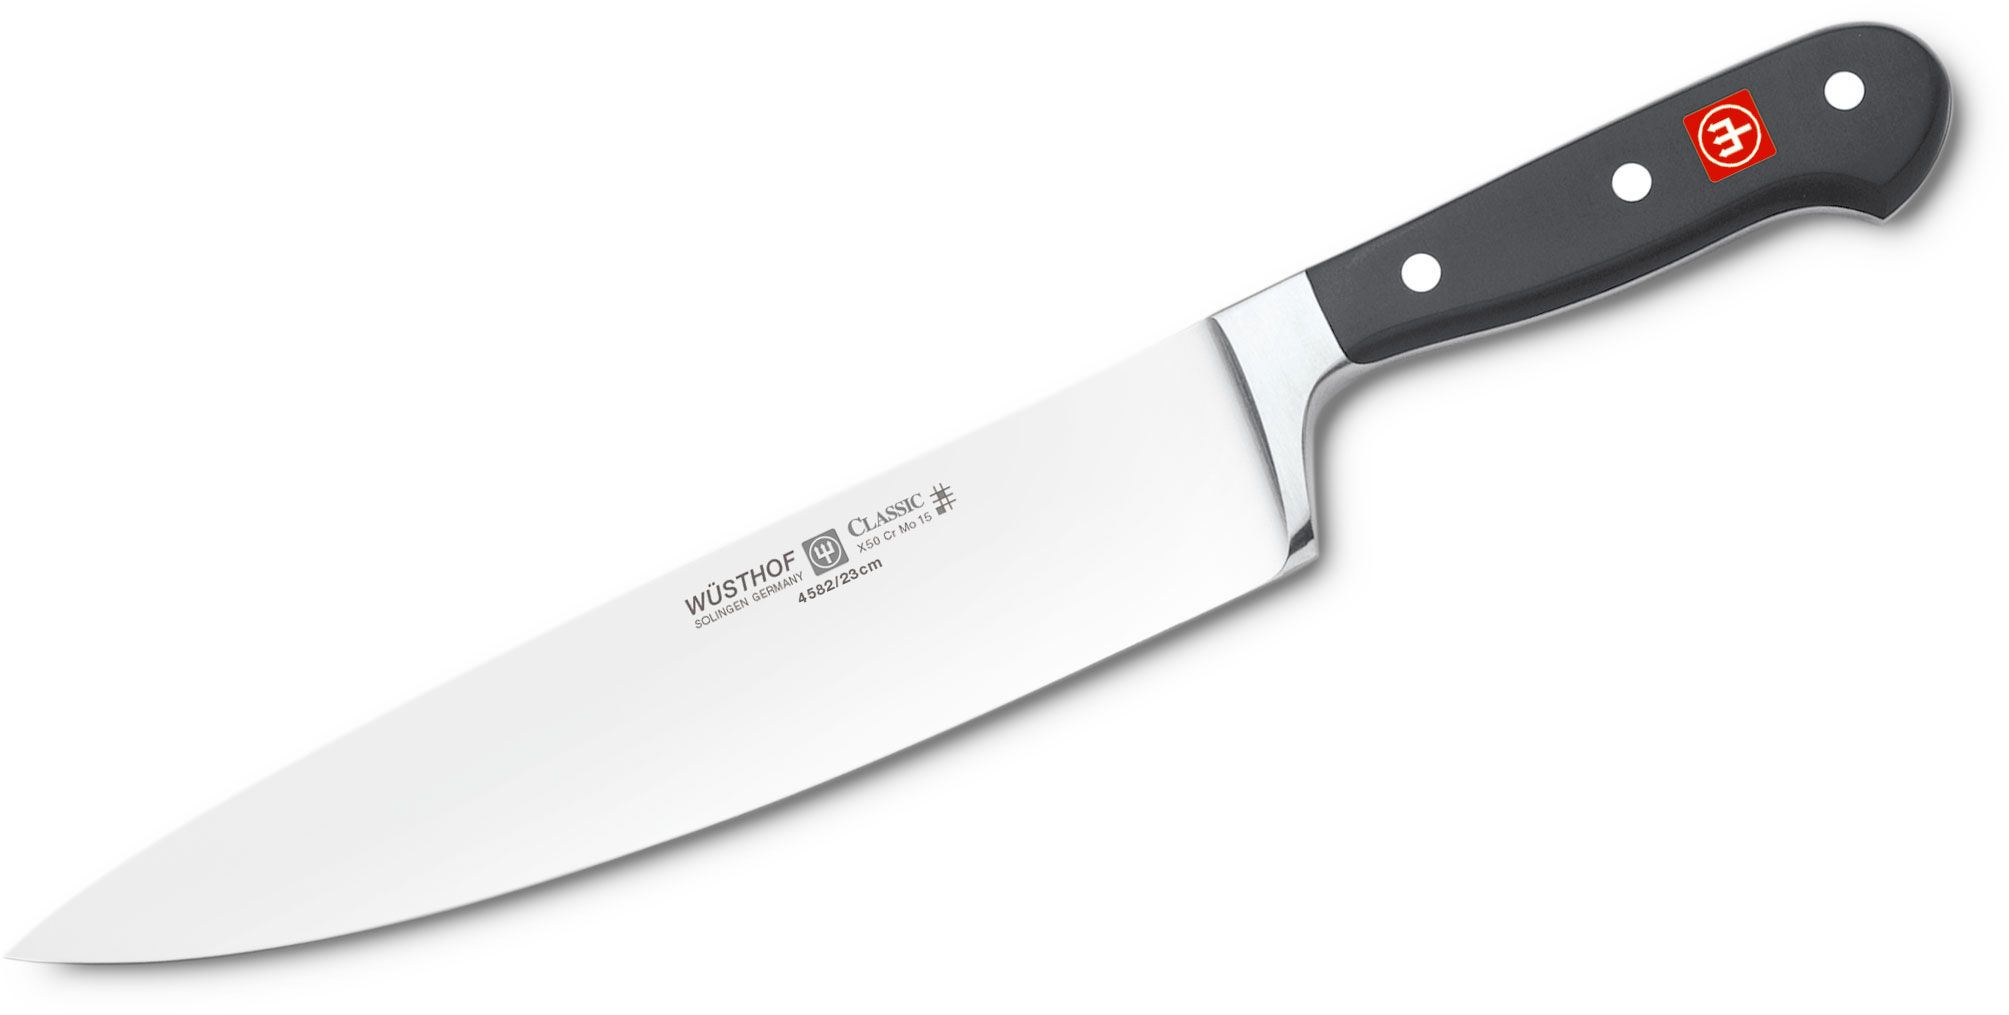 Wusthof Classic 9 inch Chef's Knife